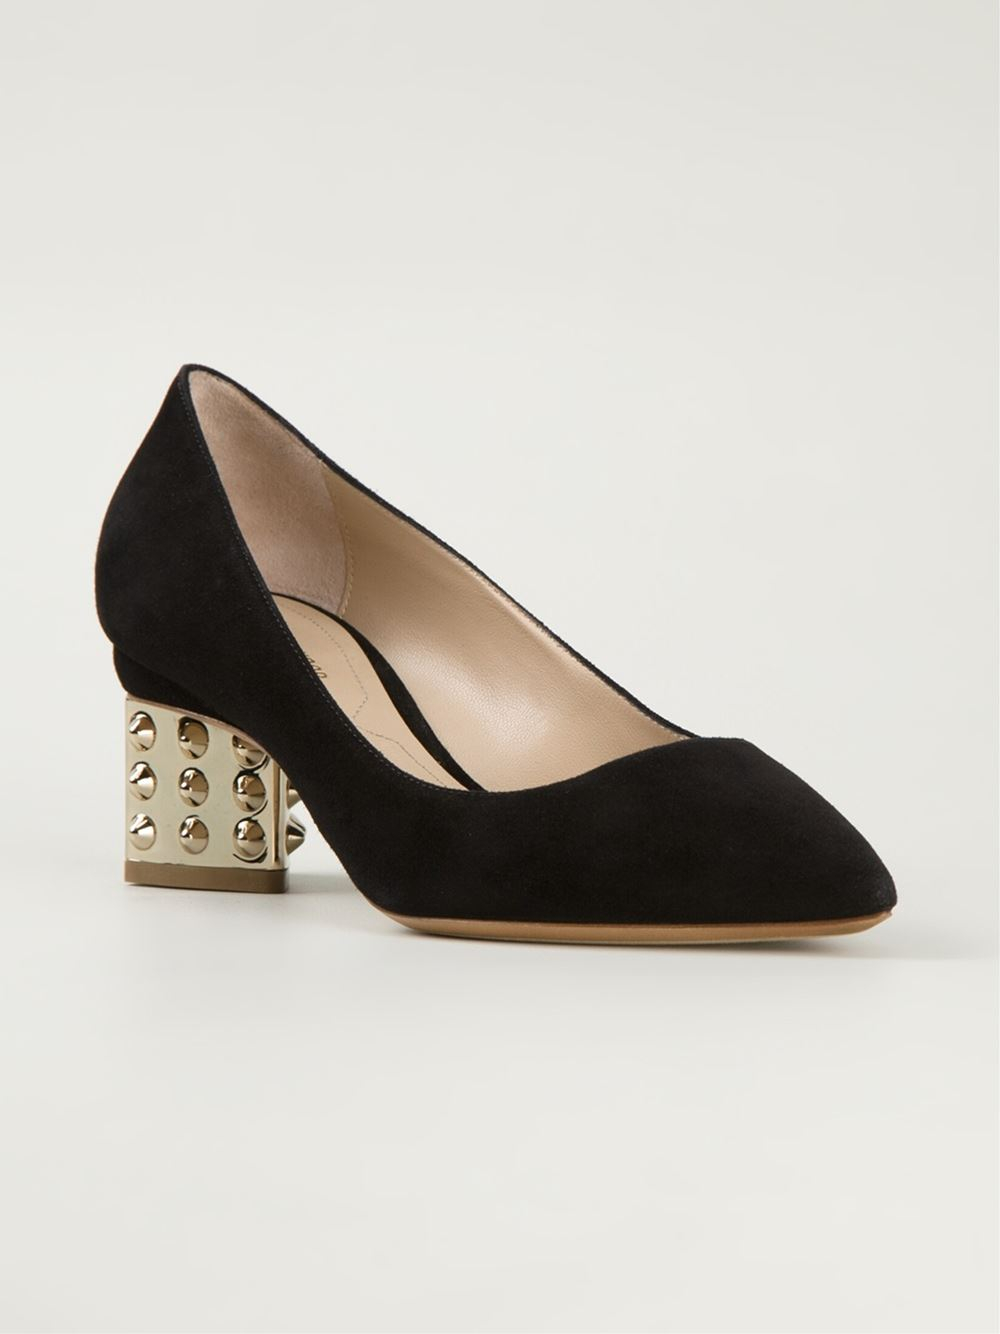 941bacfe30f Nicholas Kirkwood Prism Leather and Suede Pumps in Black - Lyst